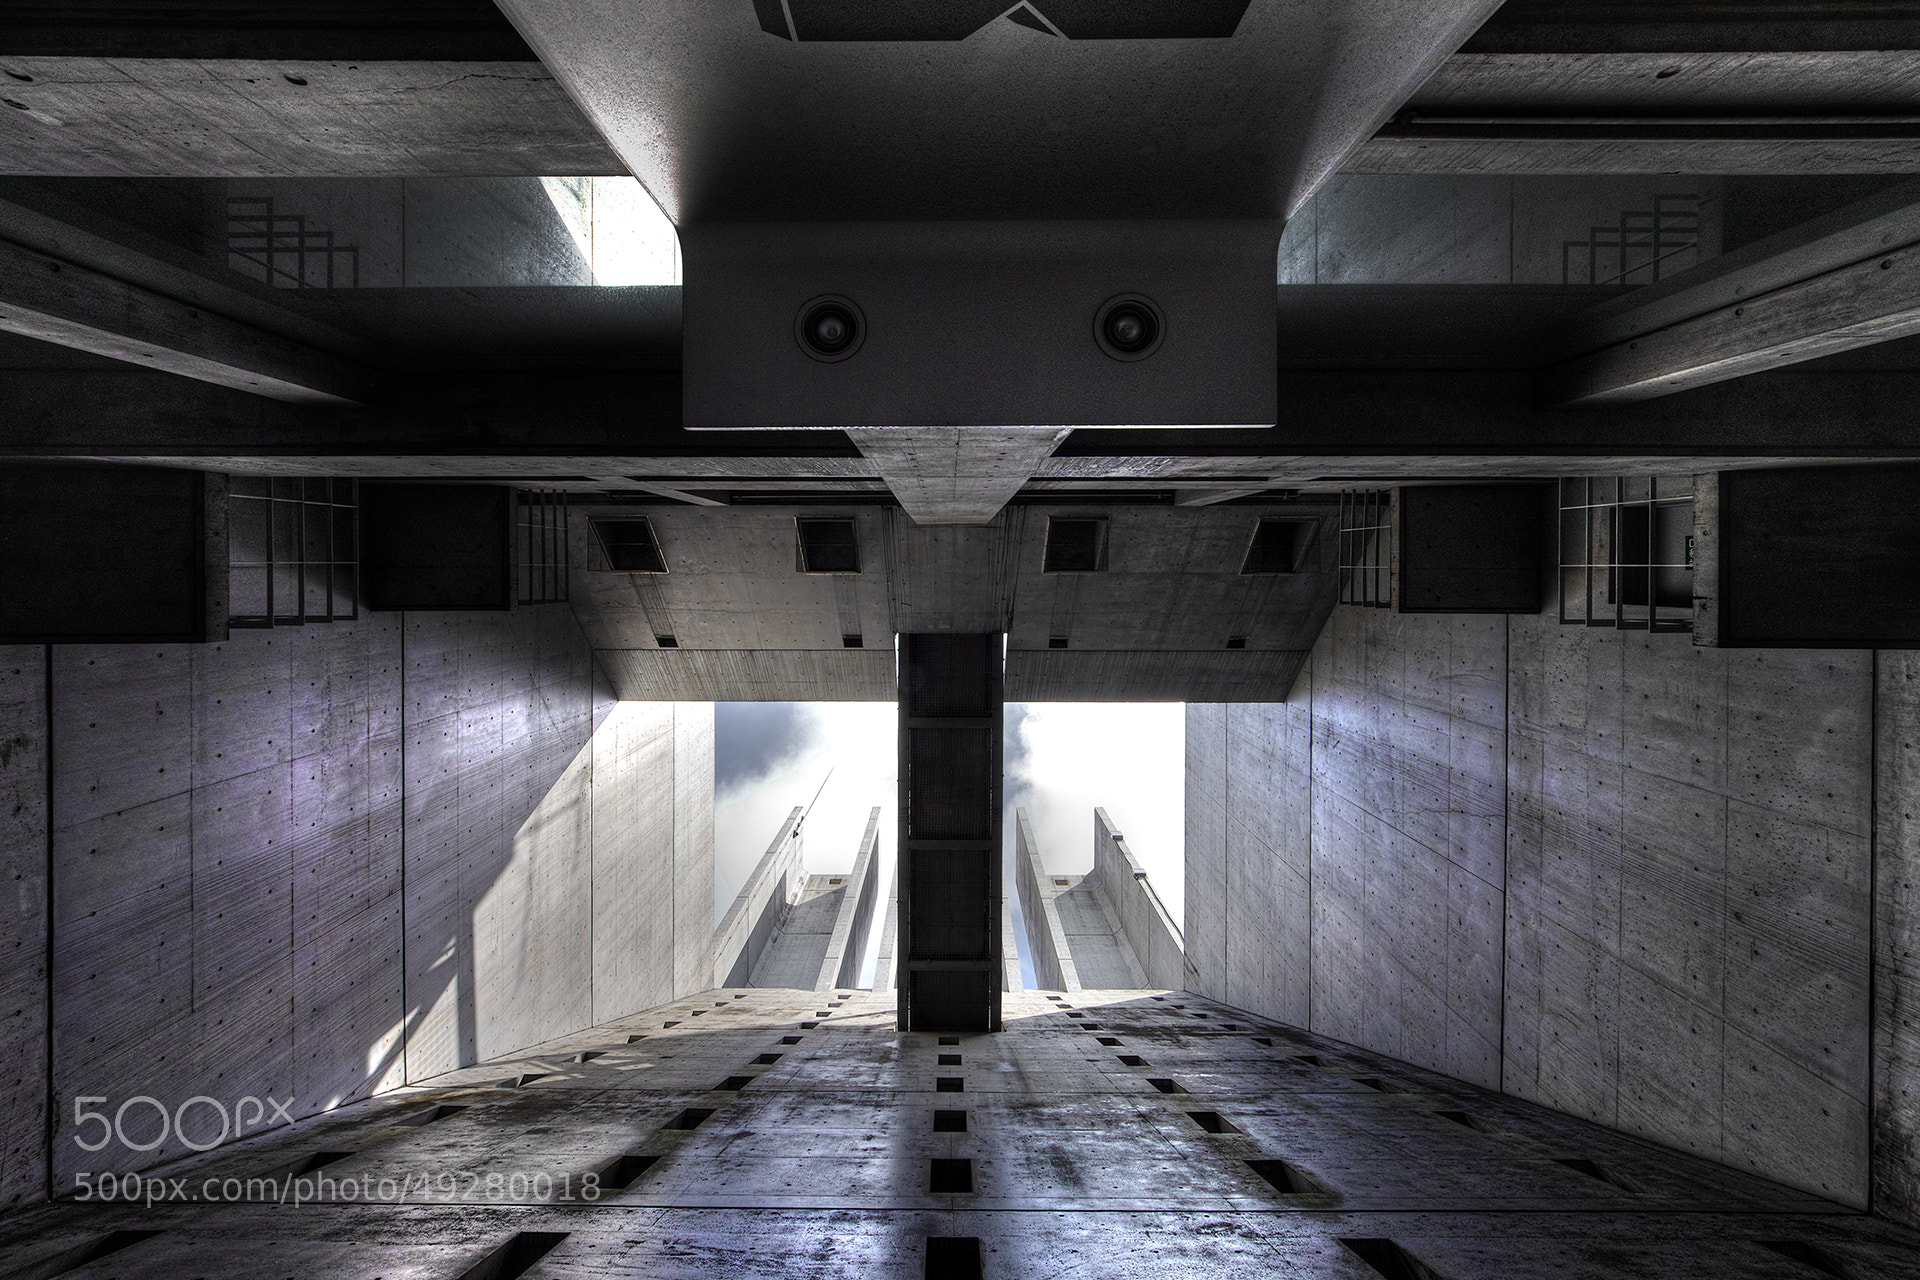 Photograph Open the Hatch by Azul Obscura on 500px